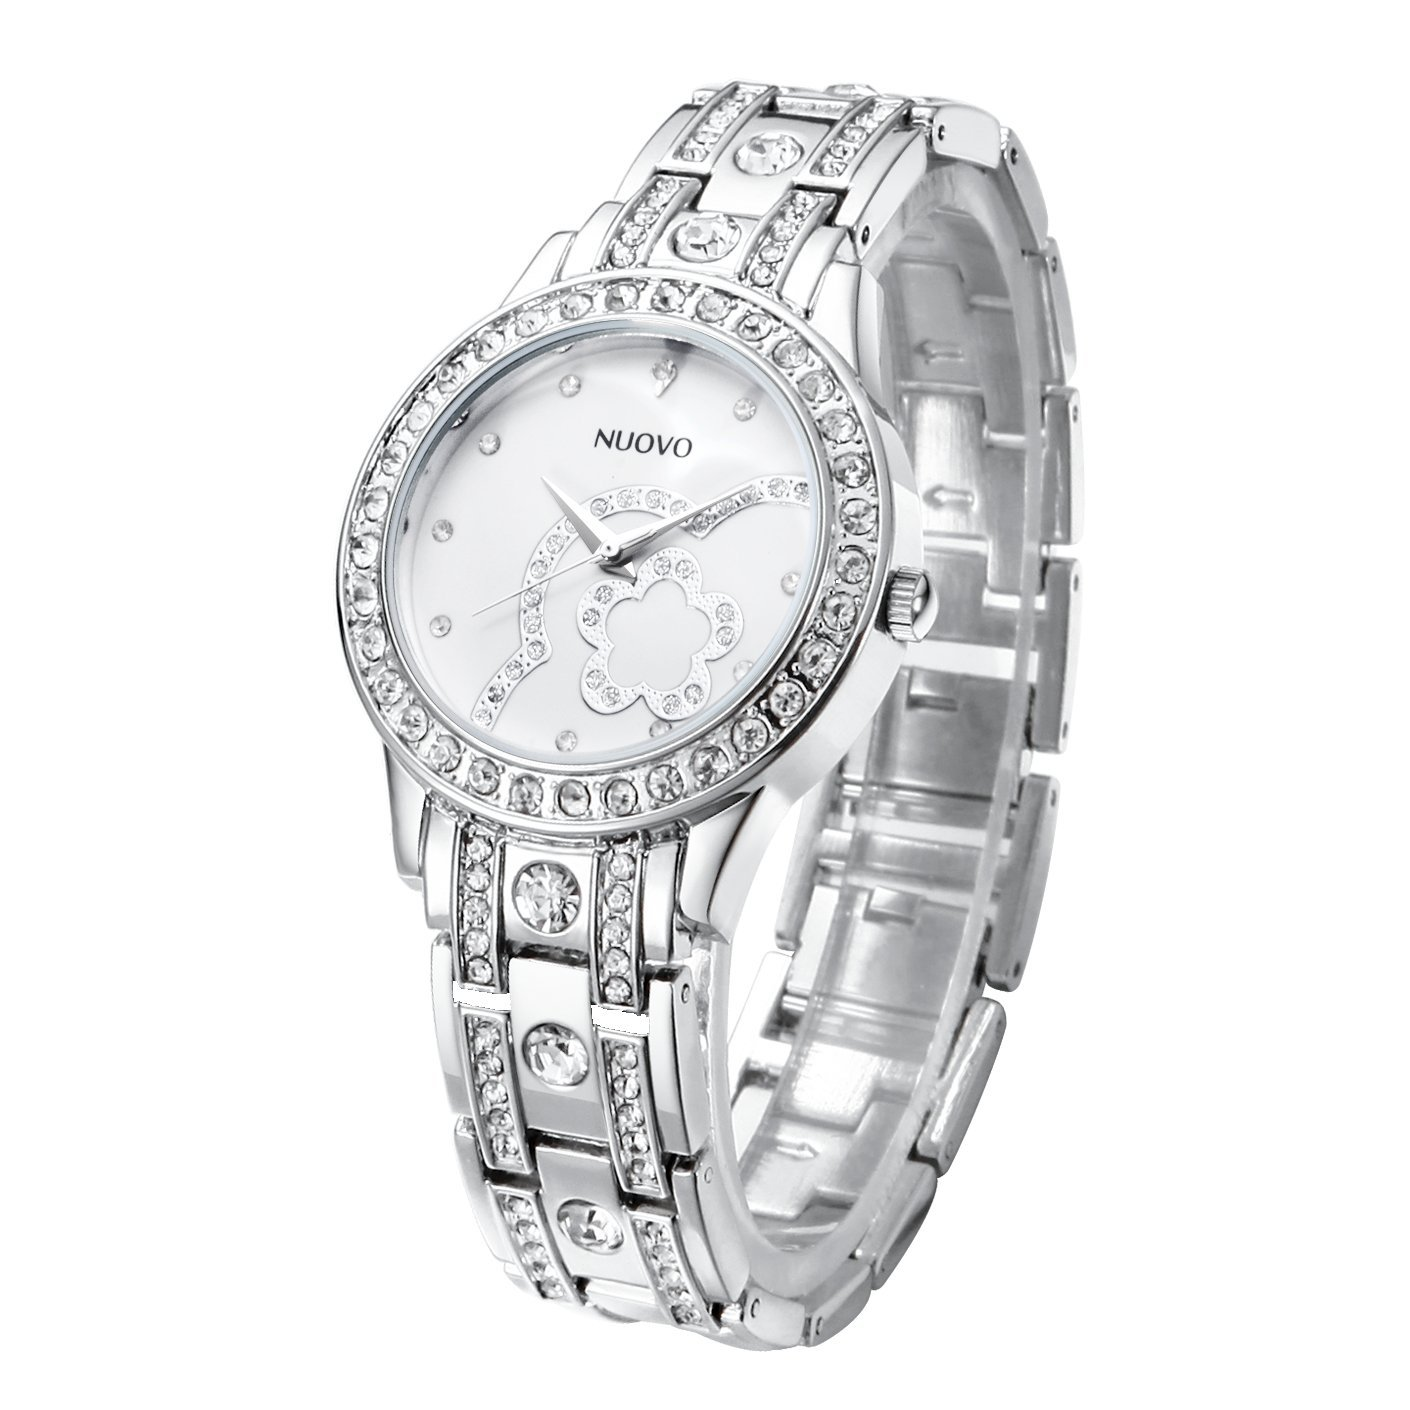 Nuovo Ladies Watch Silver Diamond Accented with Stainless Steel Band Fashion Elegant Women Watches (Flower)